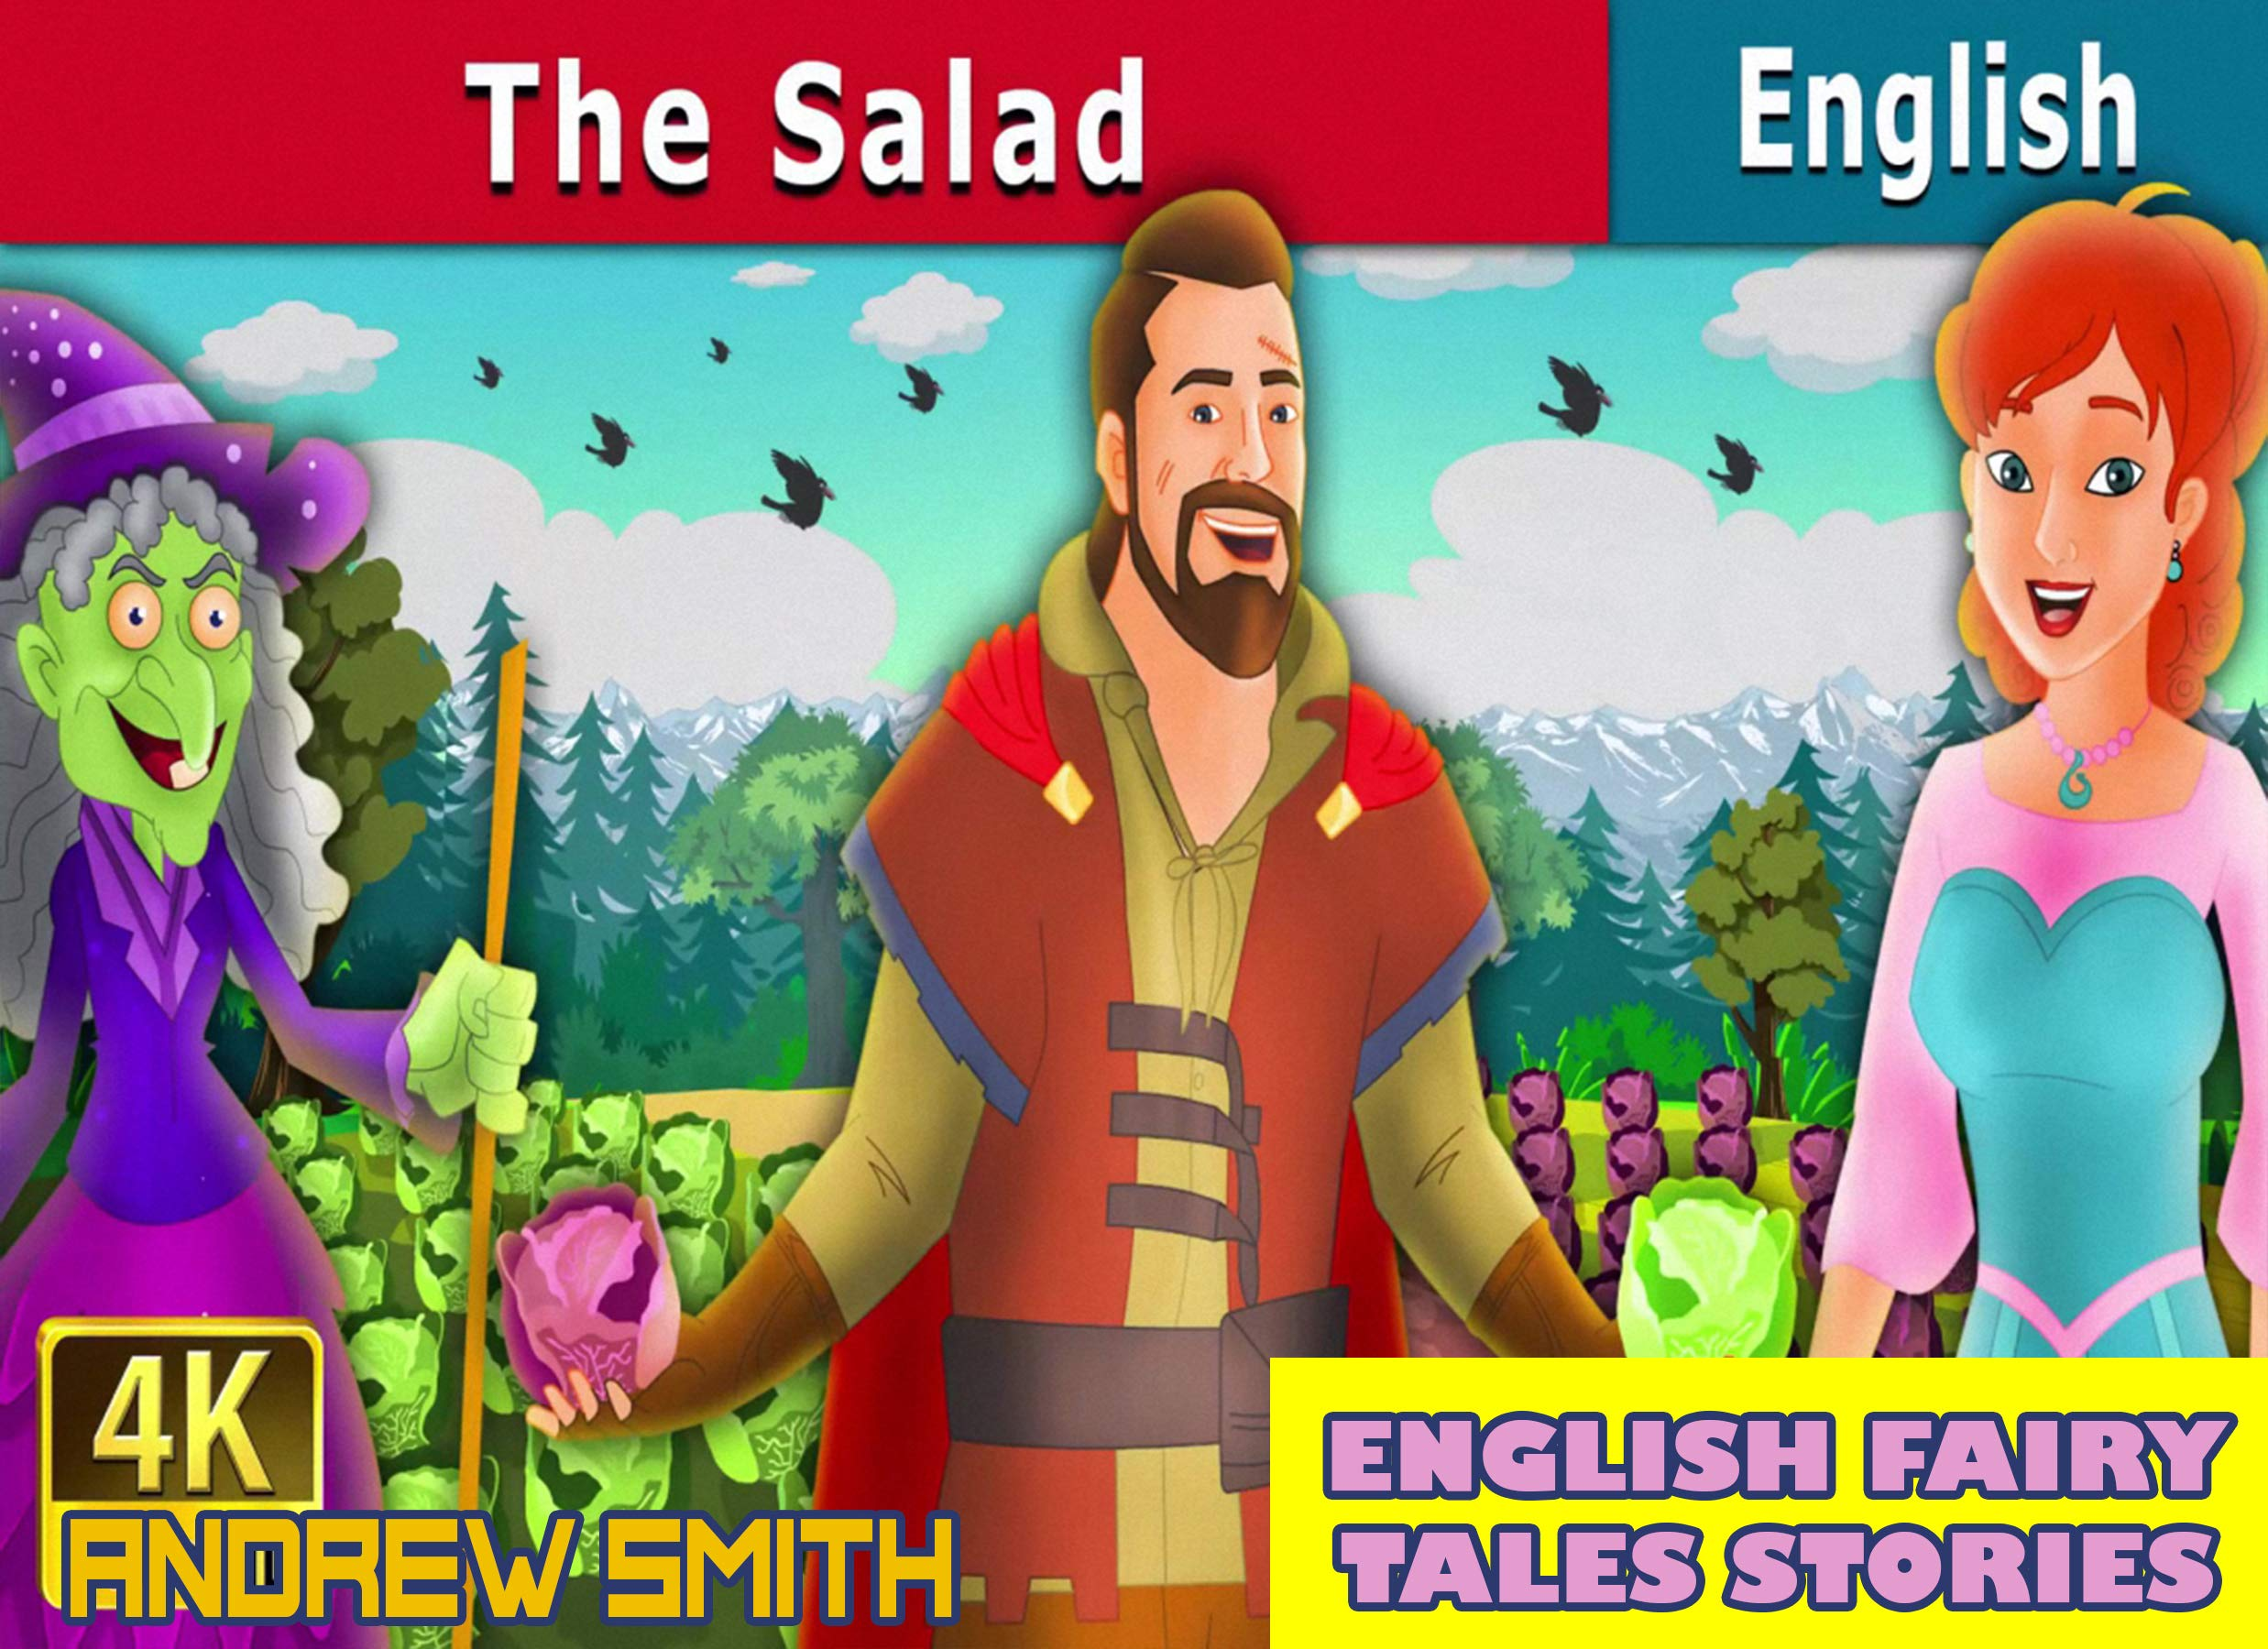 English Fairy Tales Stories: The Salad - Great 5-Minute Fairy Tale Picture Book For Kids, Boys, Girls, Children Of All Age